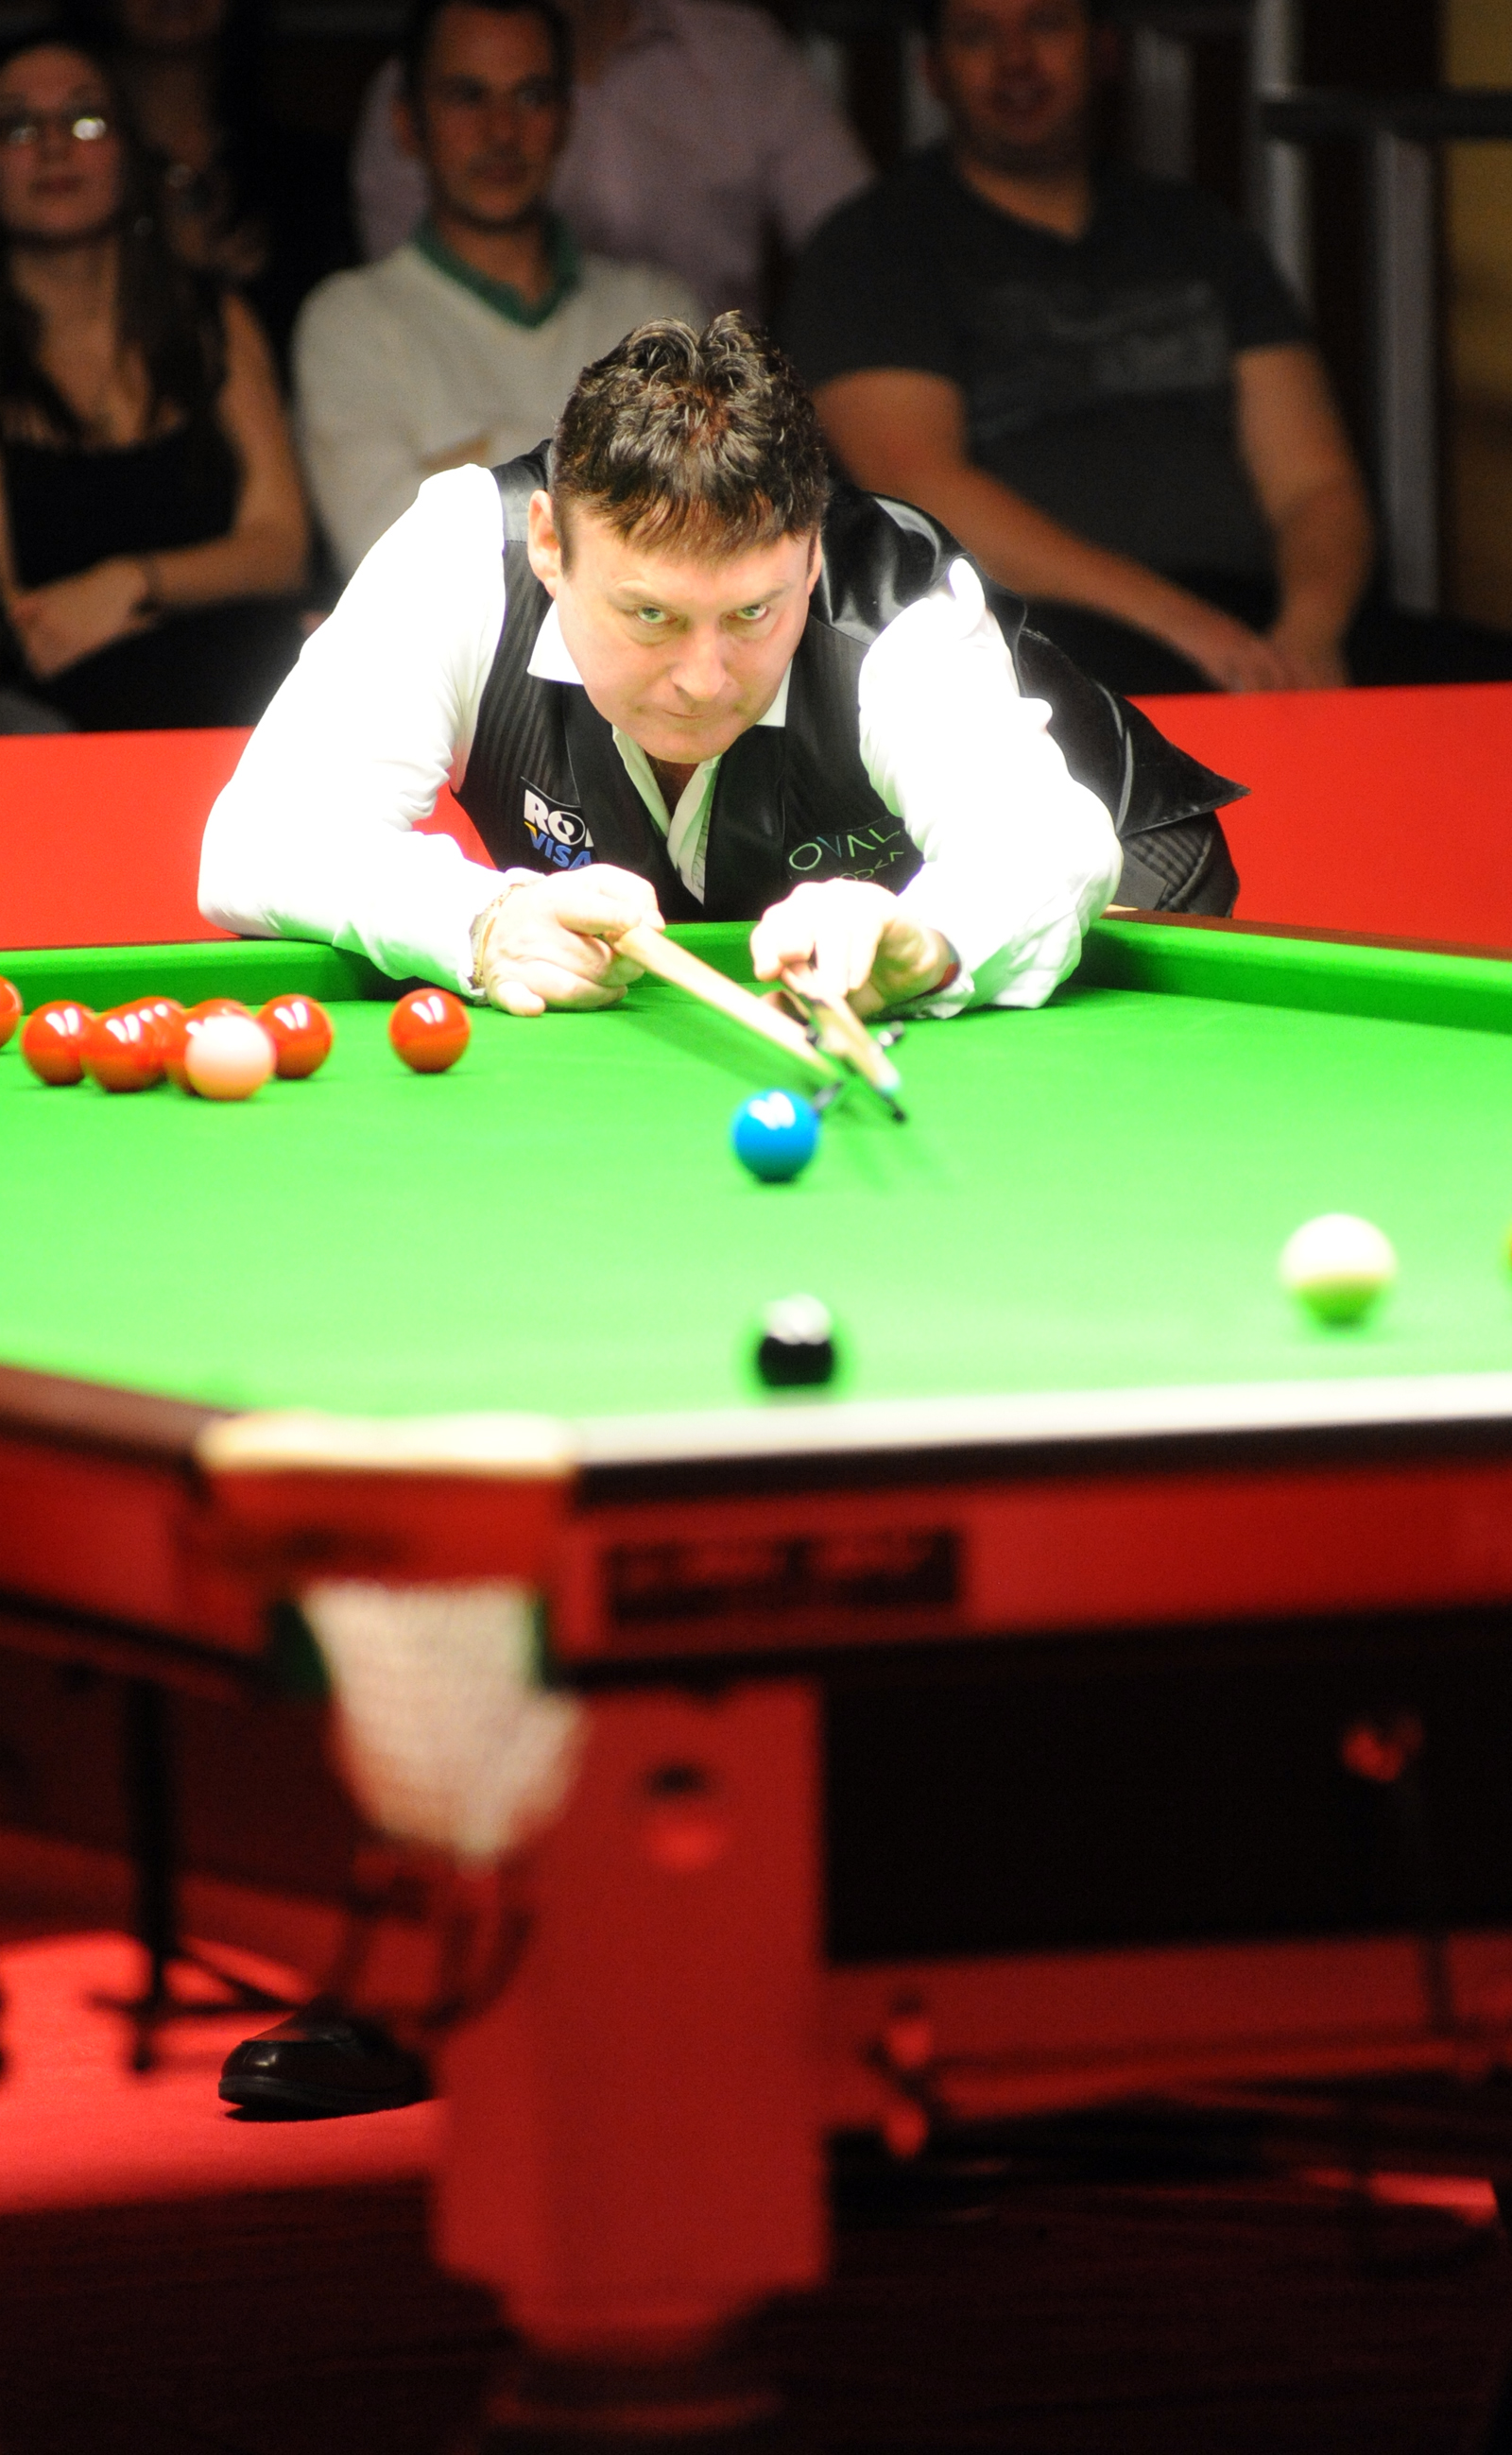 Snooker stars match spoiled by poor view